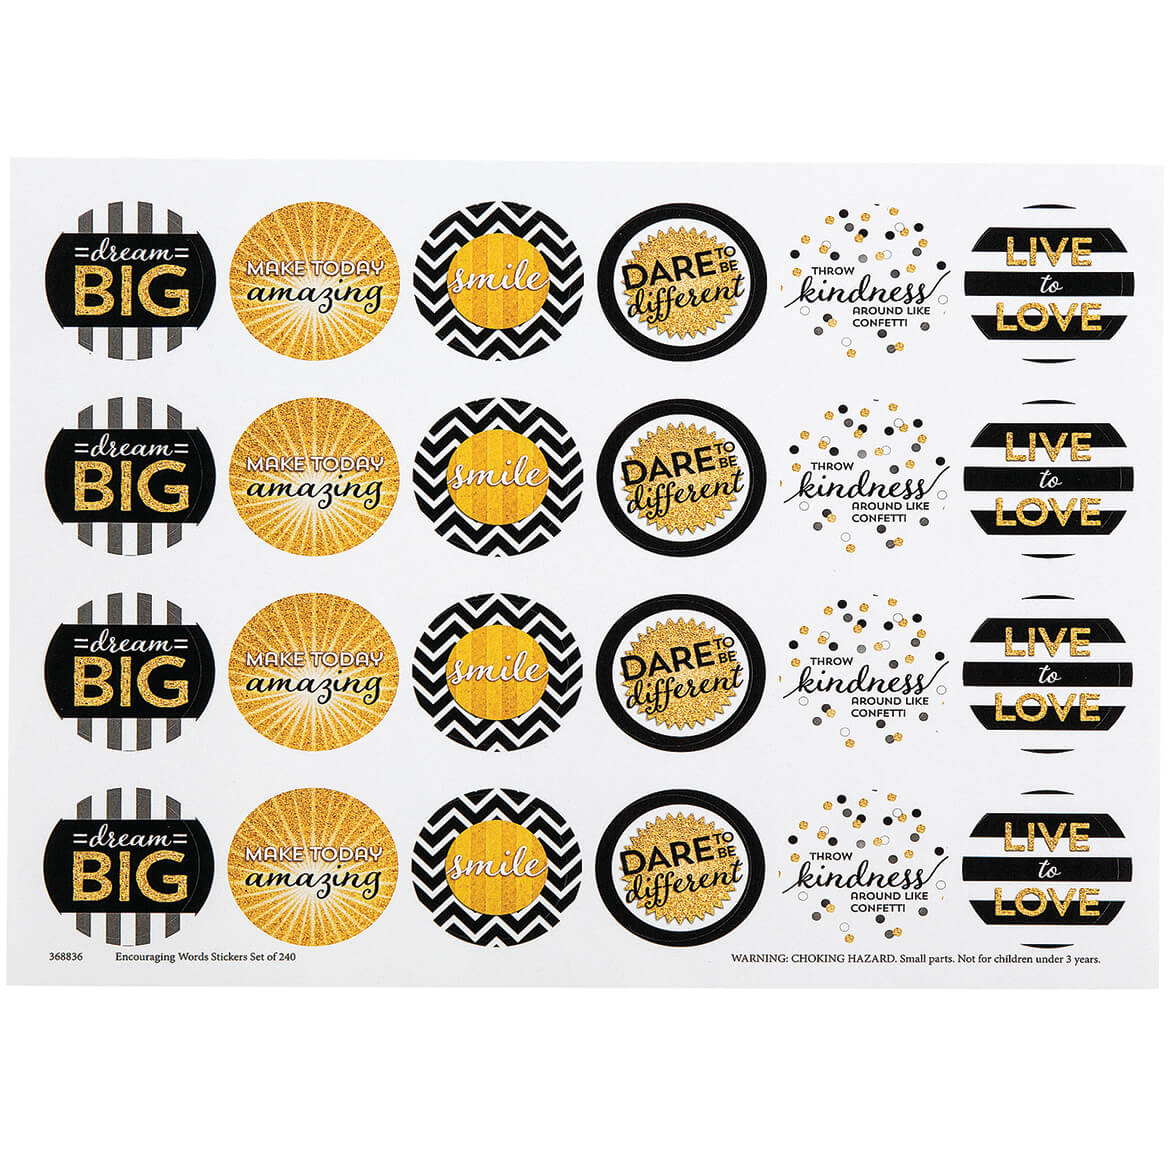 Encouraging Words Stickers Set of 240-368836